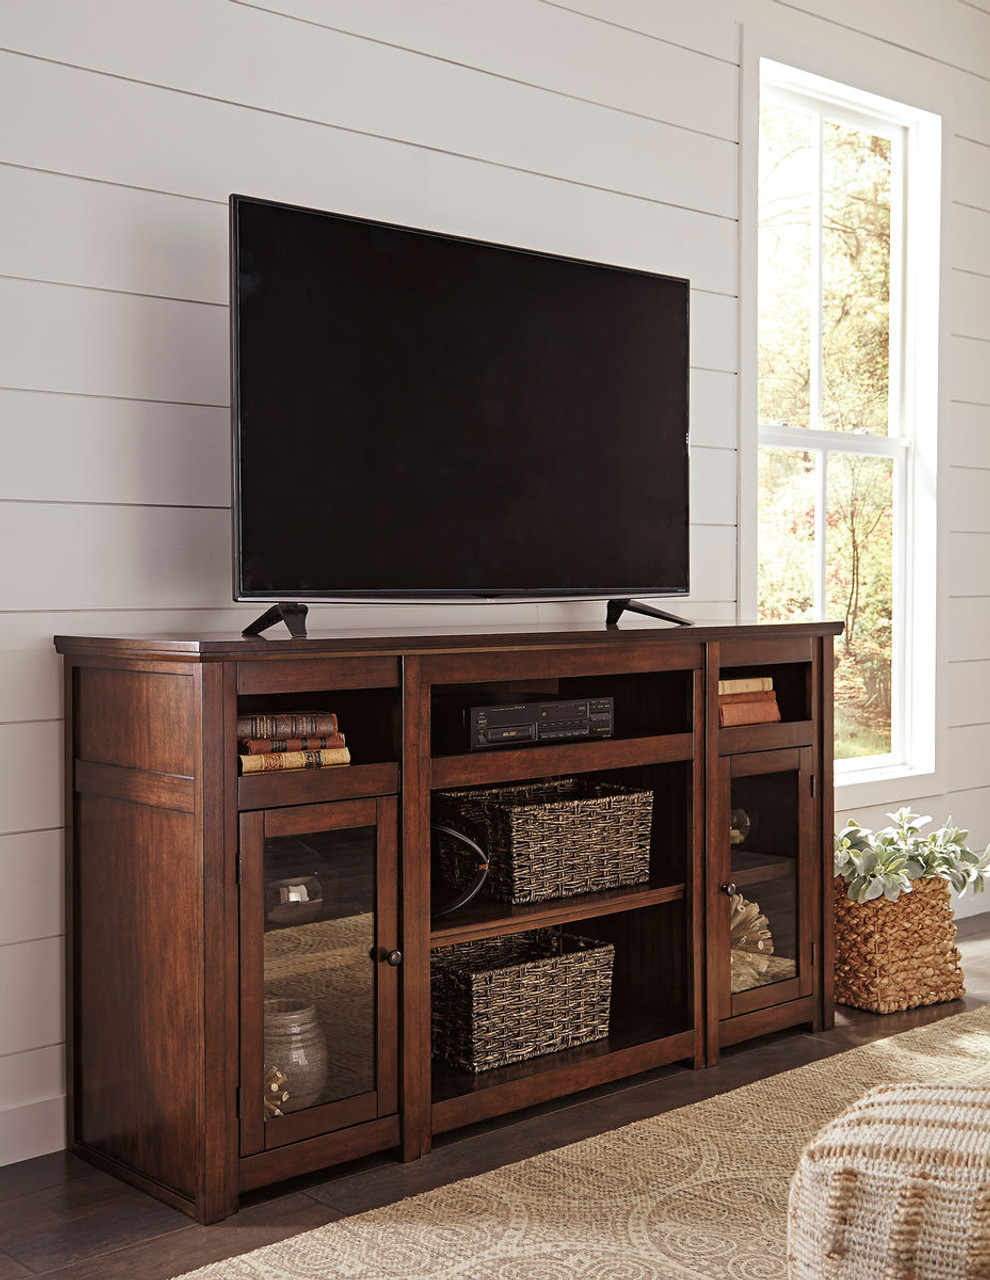 Sofa Jacksonville Xl The Harpan Reddish Brown Xl Tv Stand With Fireplace Option